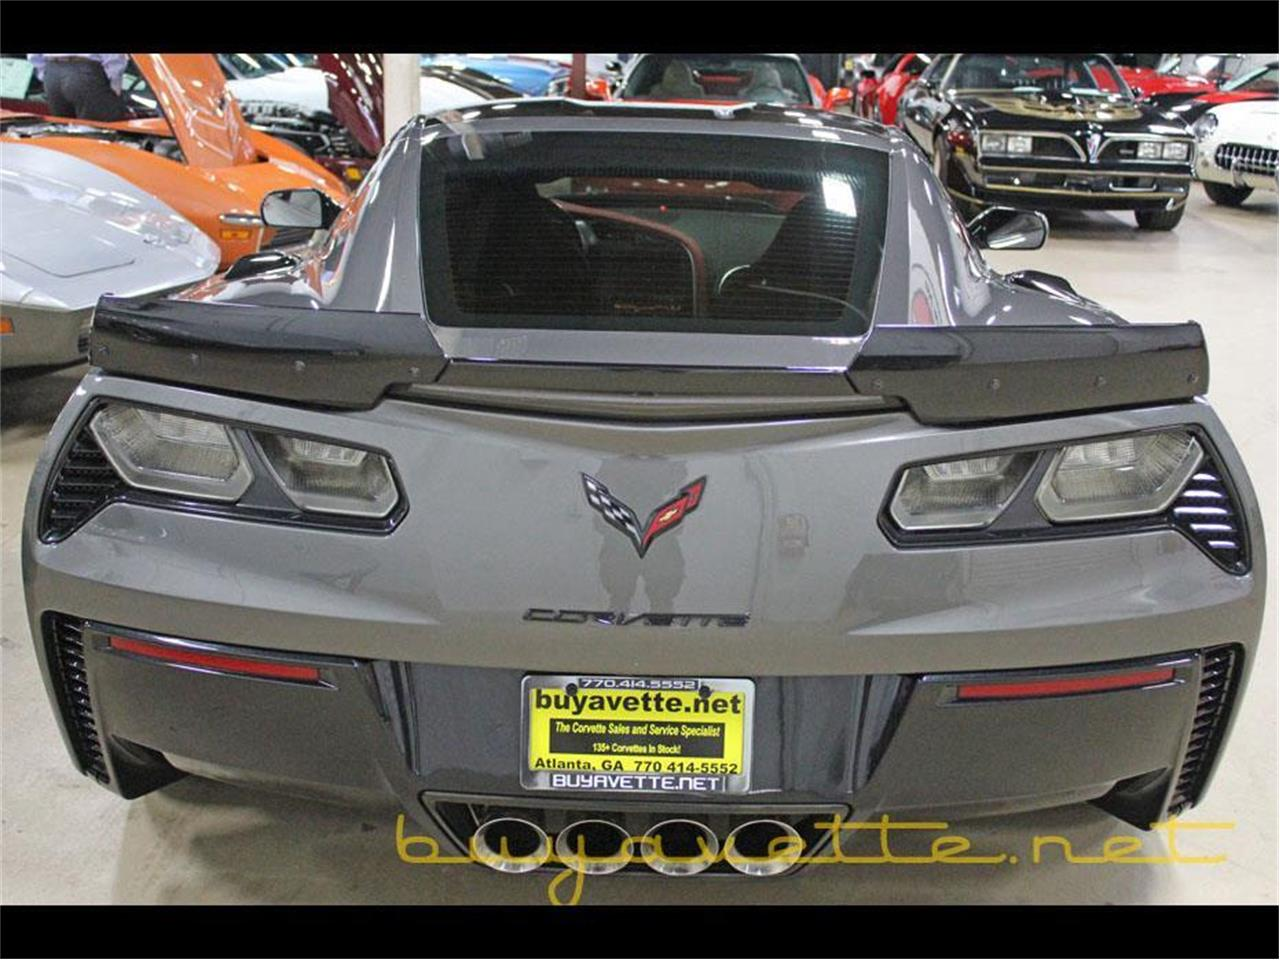 2015 Chevrolet Corvette (CC-1321655) for sale in Atlanta, Georgia